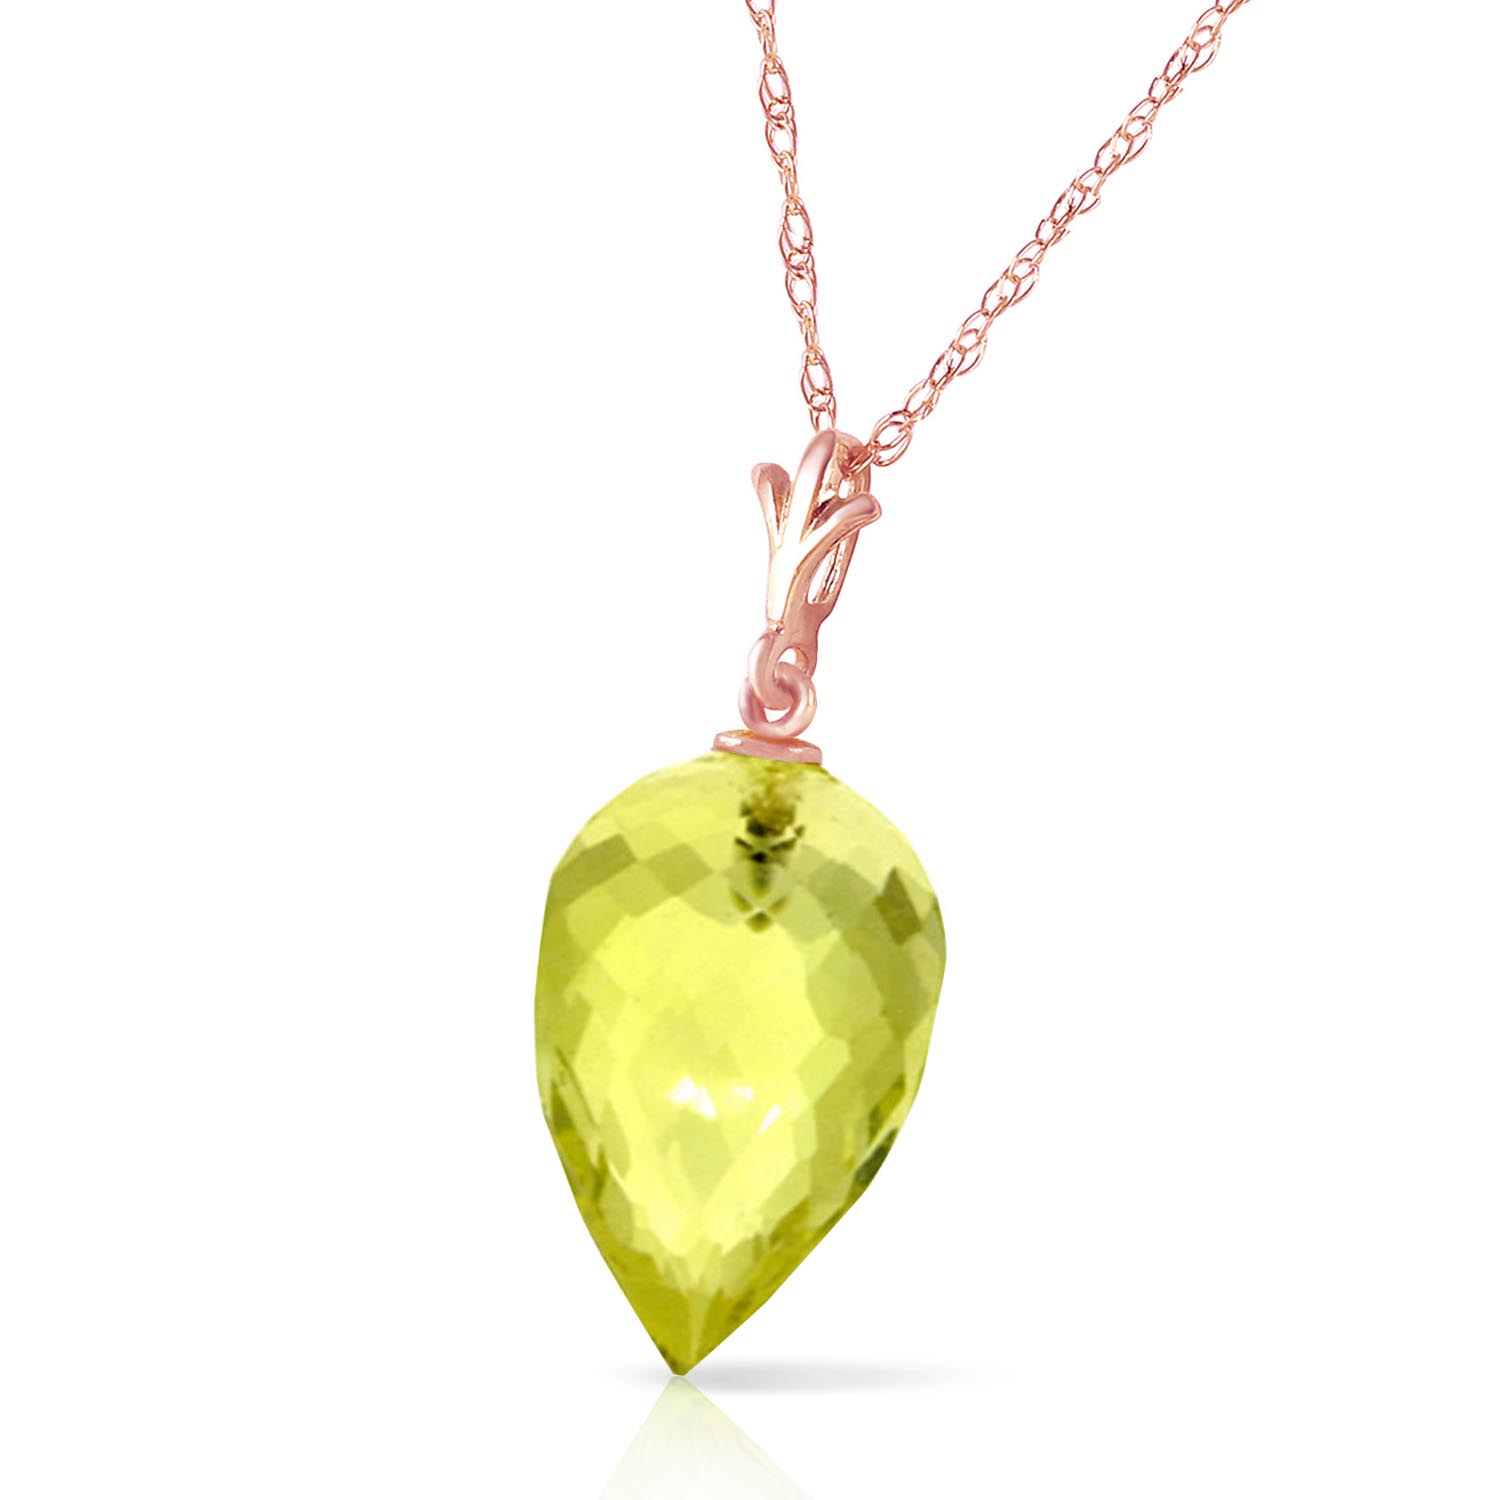 Lemon Quartz Briolette Pendant Necklace 9.0ct in 14K Rose Gold